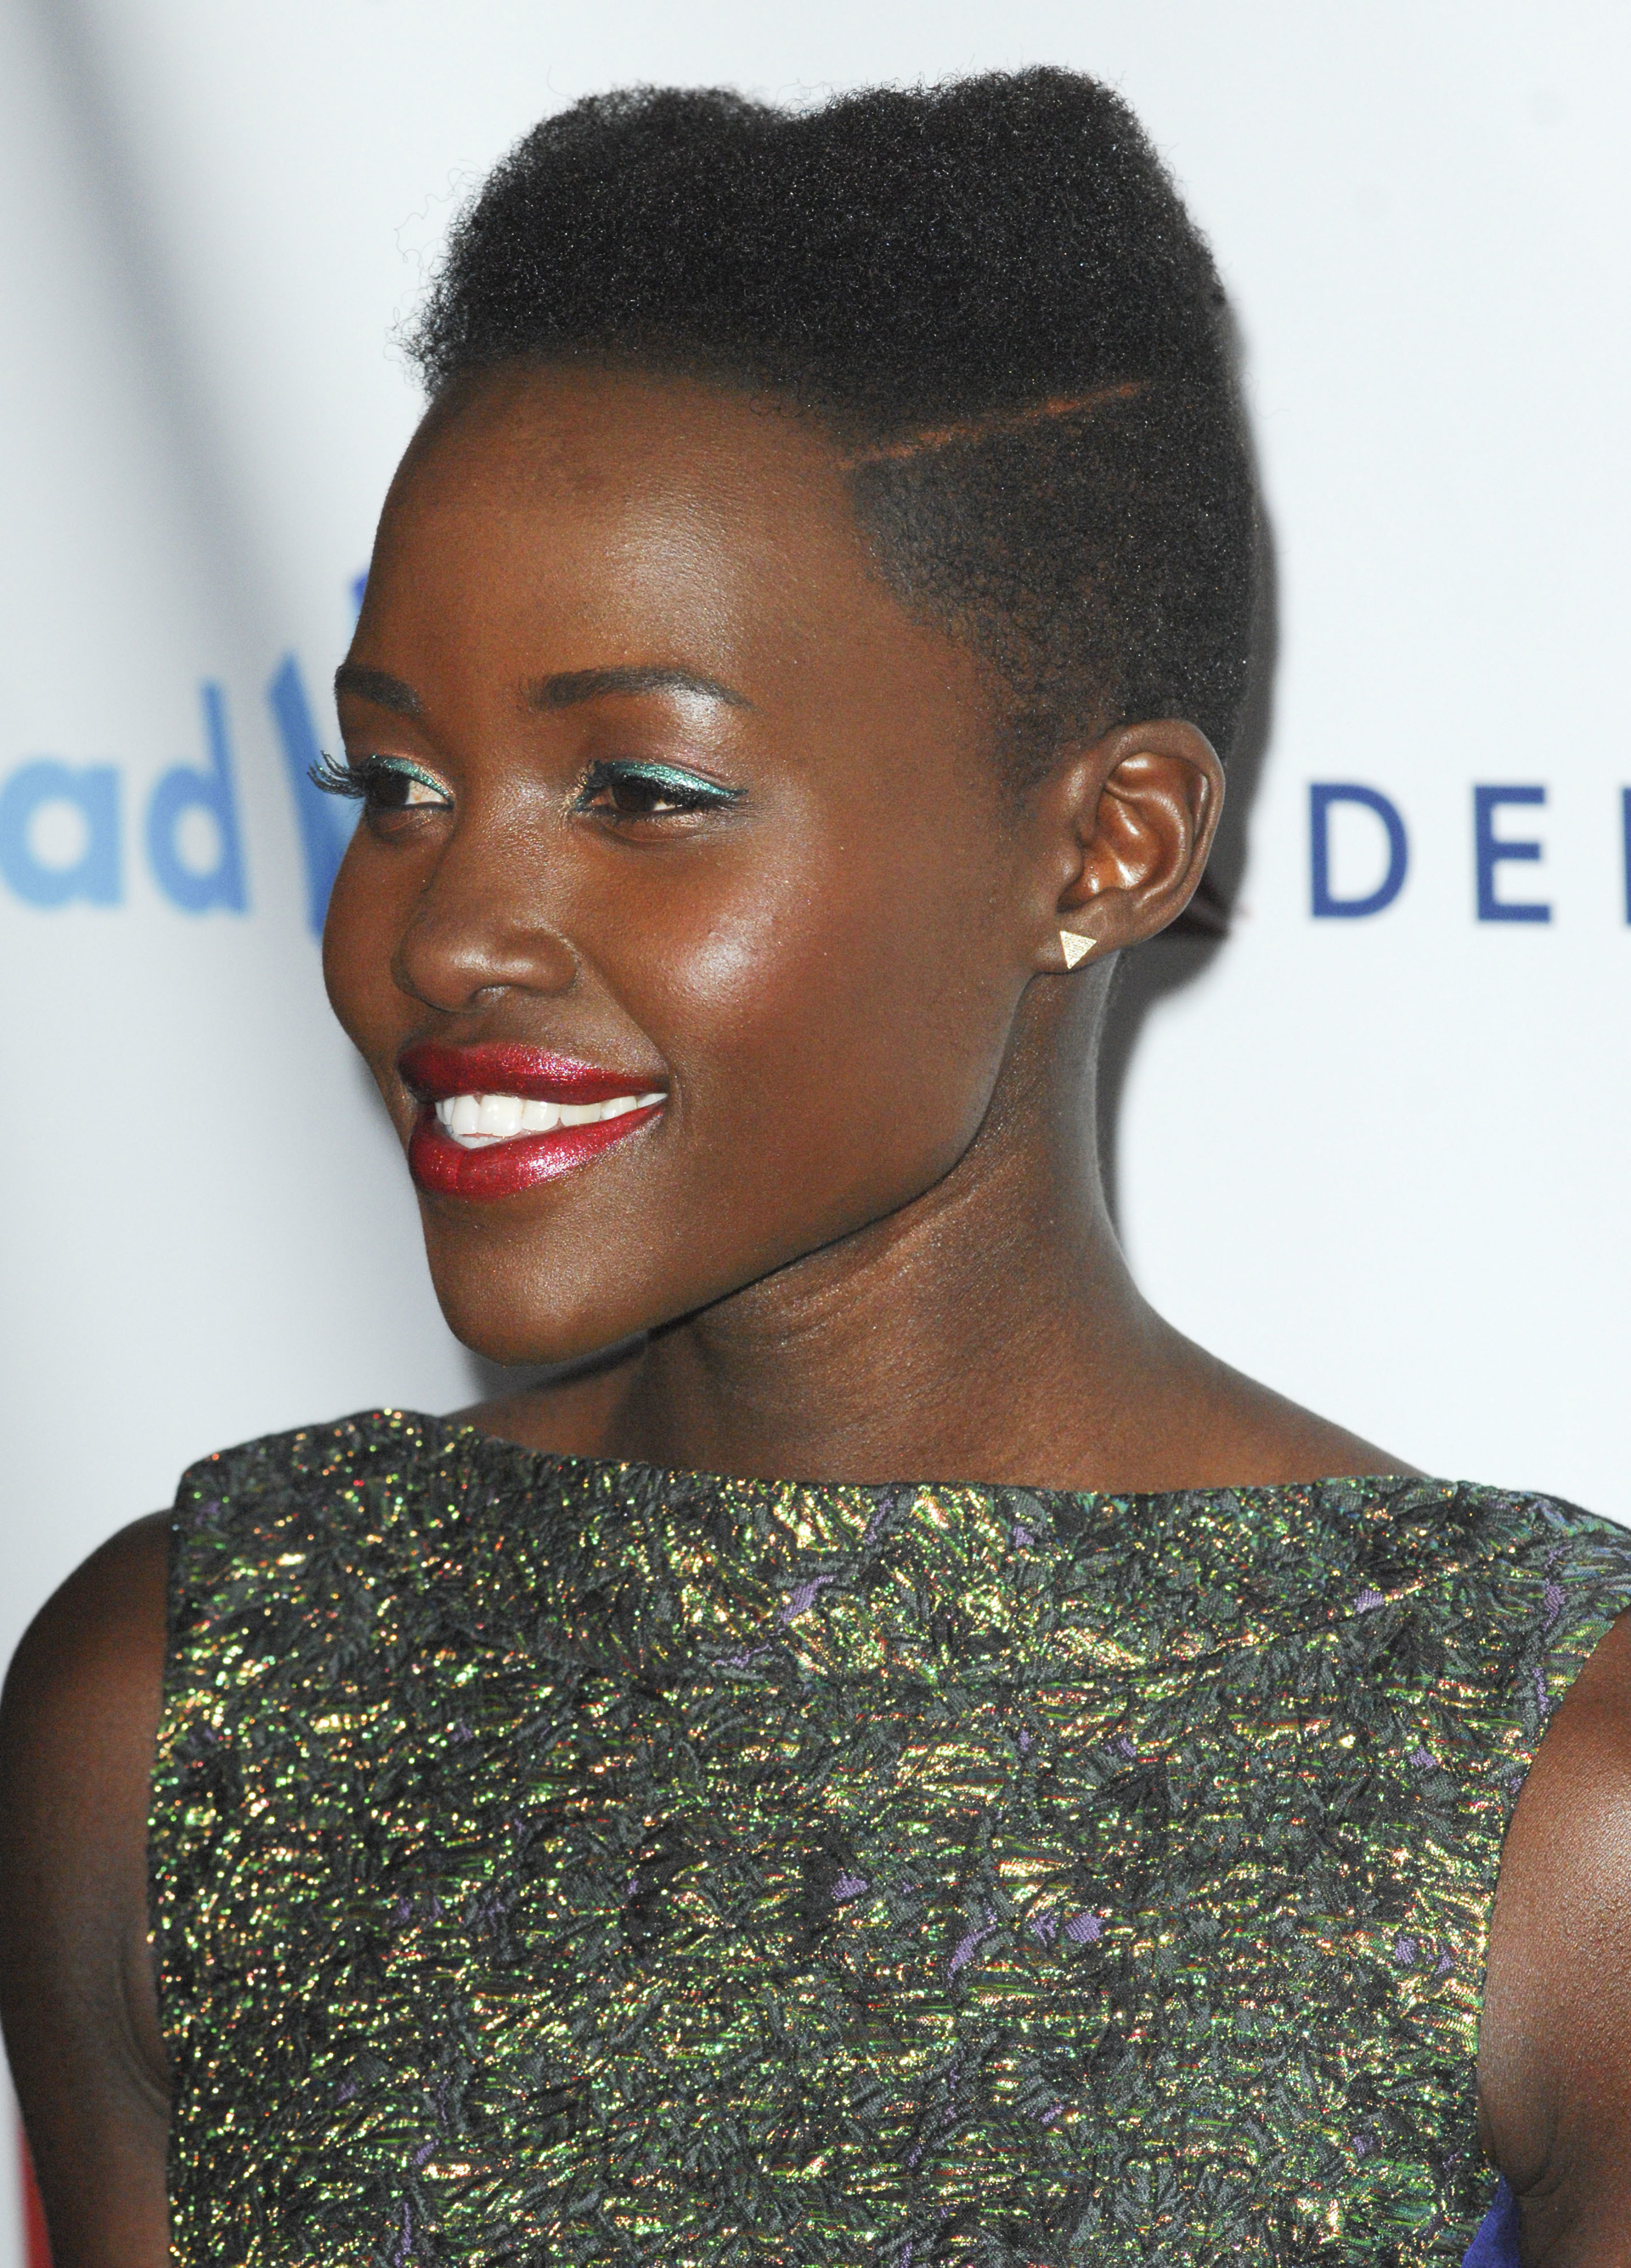 Lupita Nyongo with natural hair